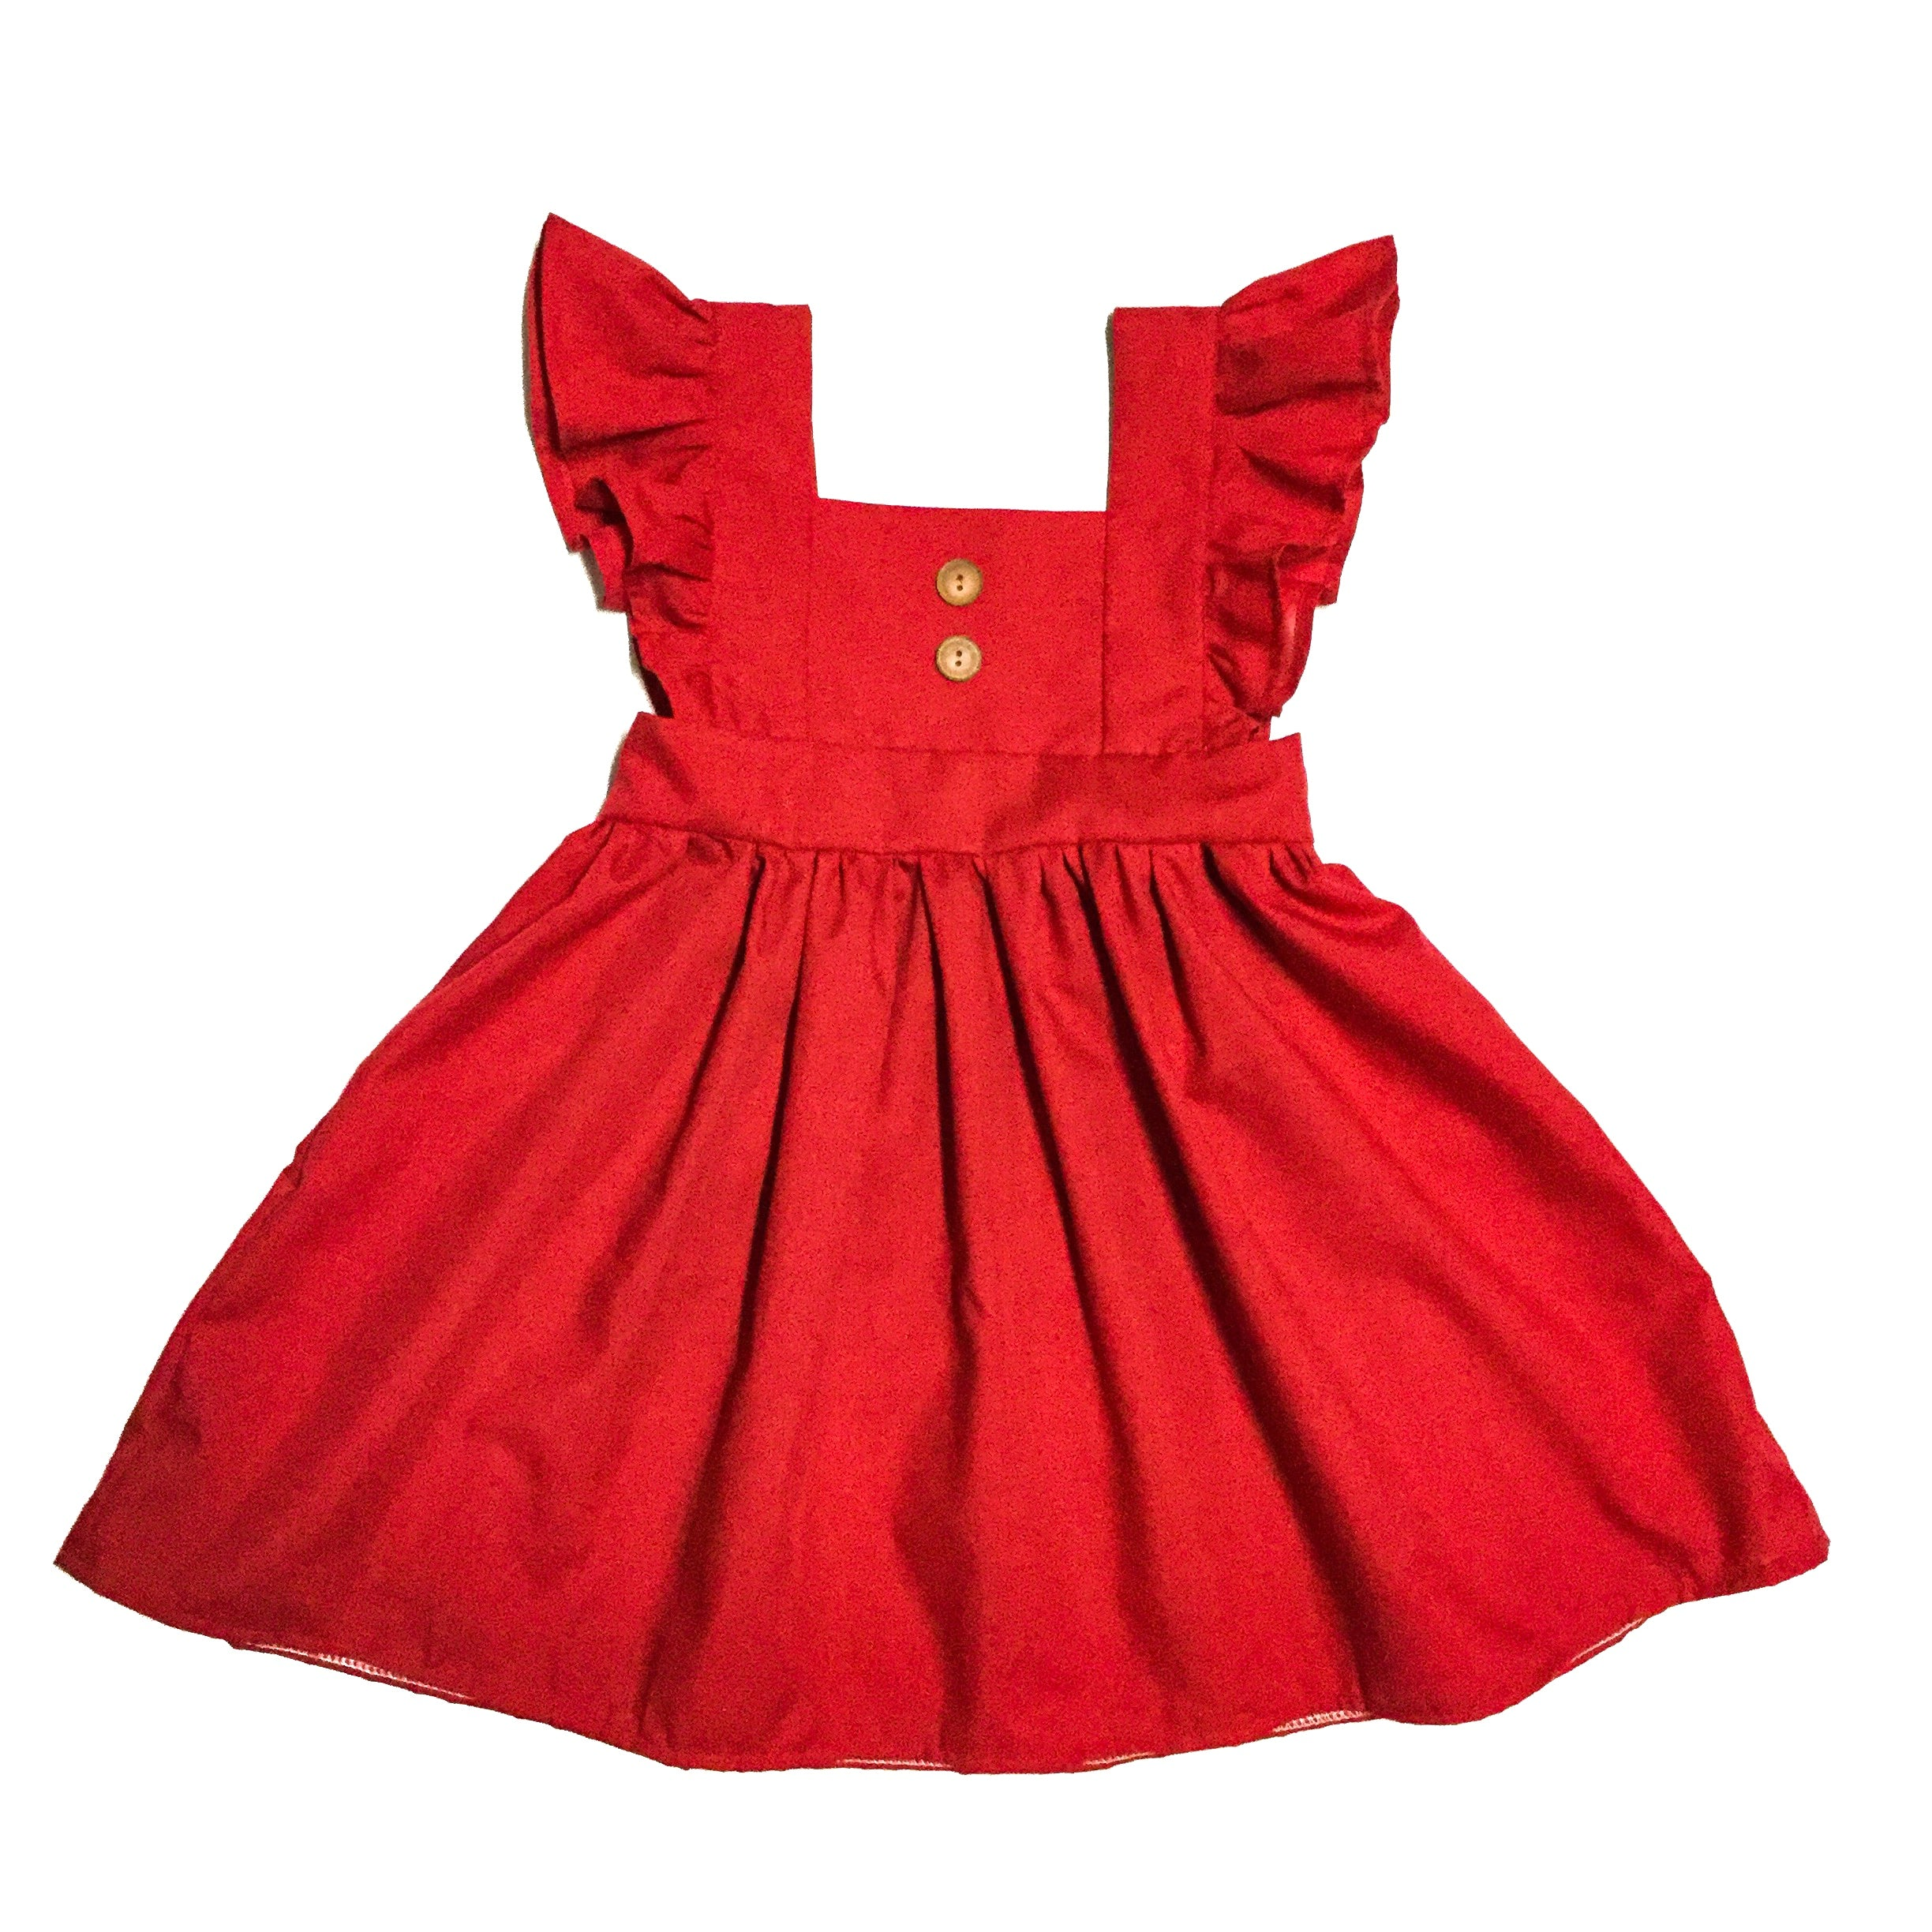 handmade vintage style dress with buttons for little girls